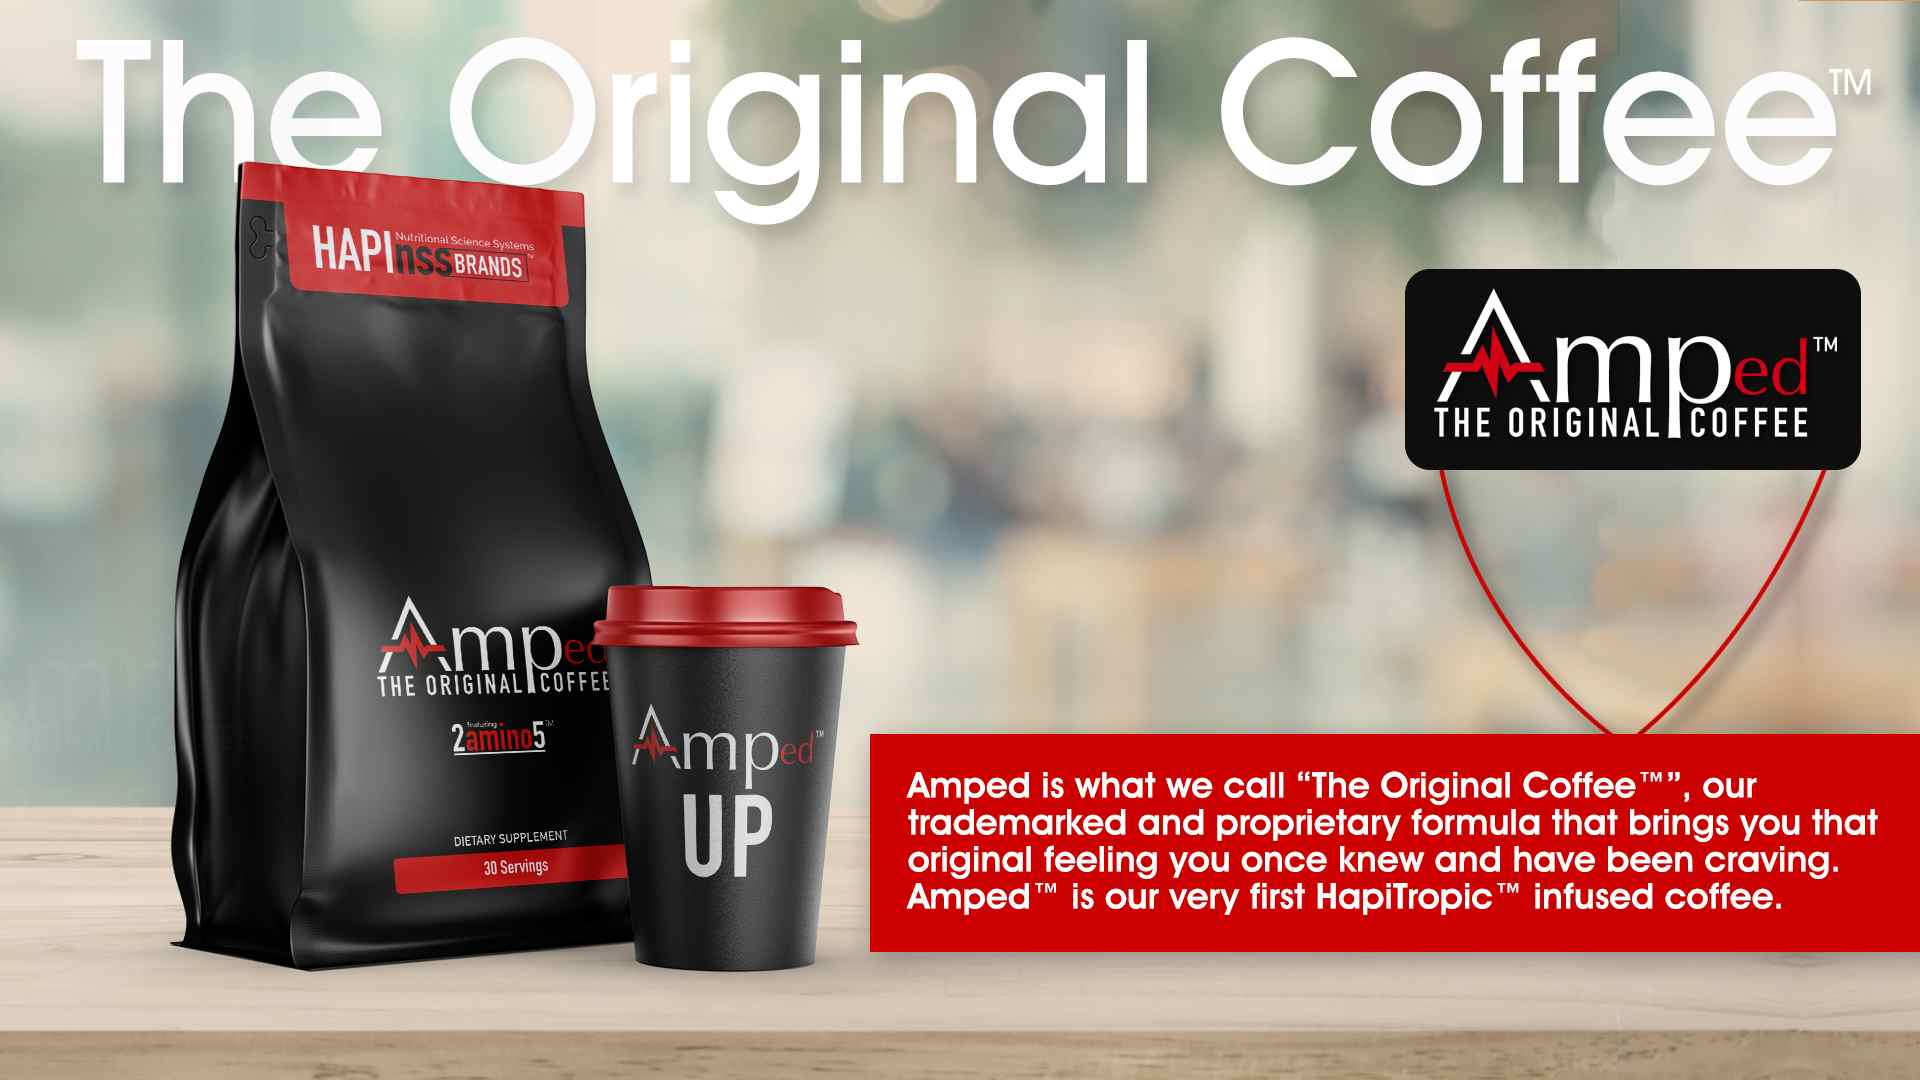 Amped Coffee - Hapiness Brands